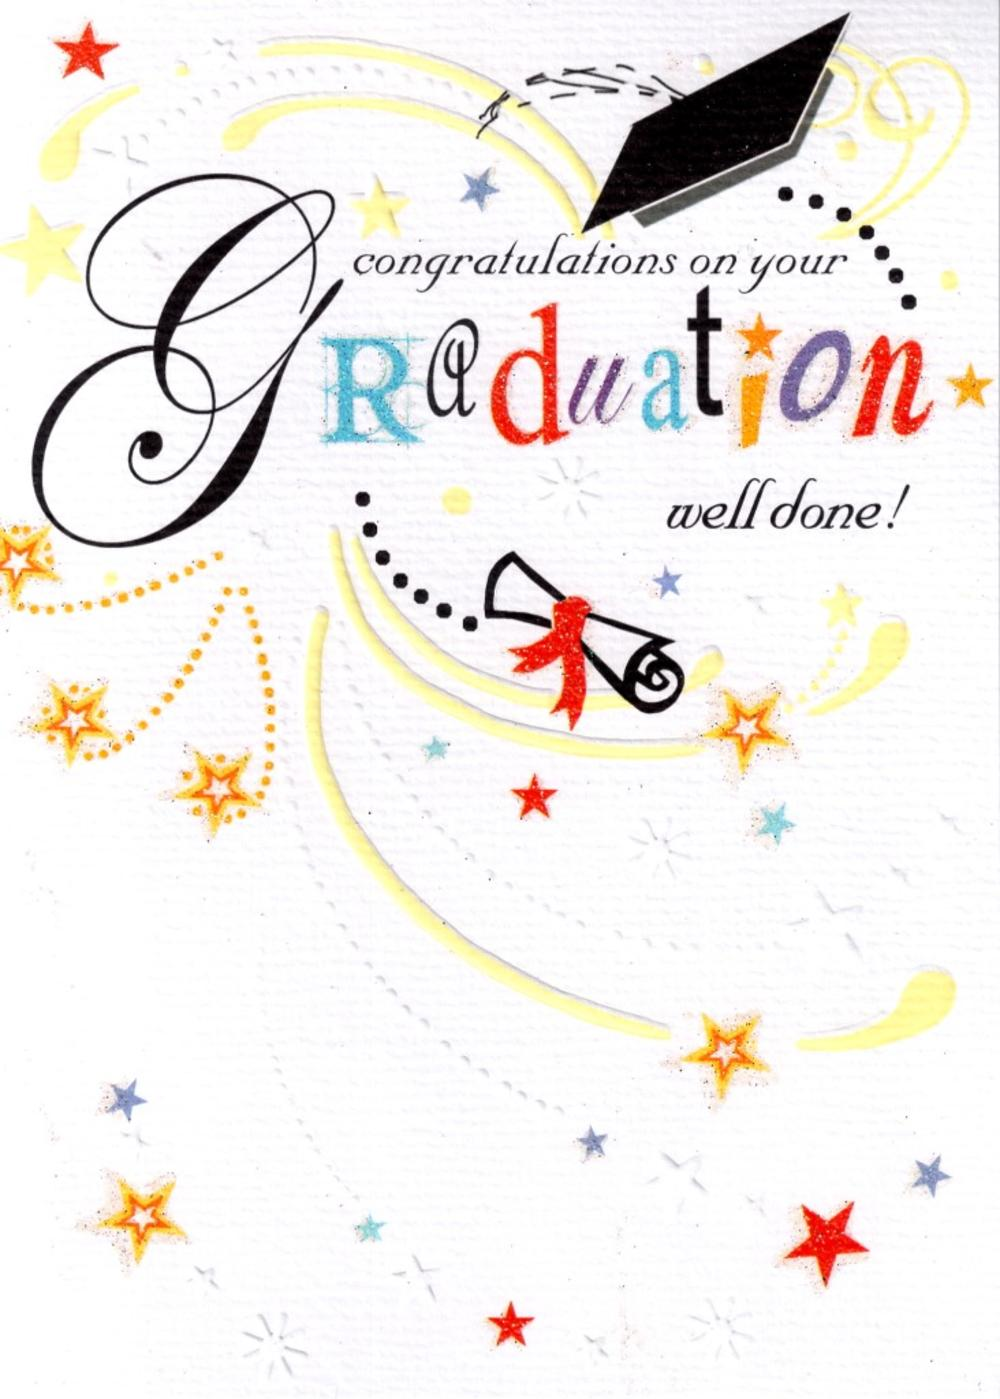 Congratulations on your graduation card cards love kates congratulations on your graduation card kristyandbryce Gallery